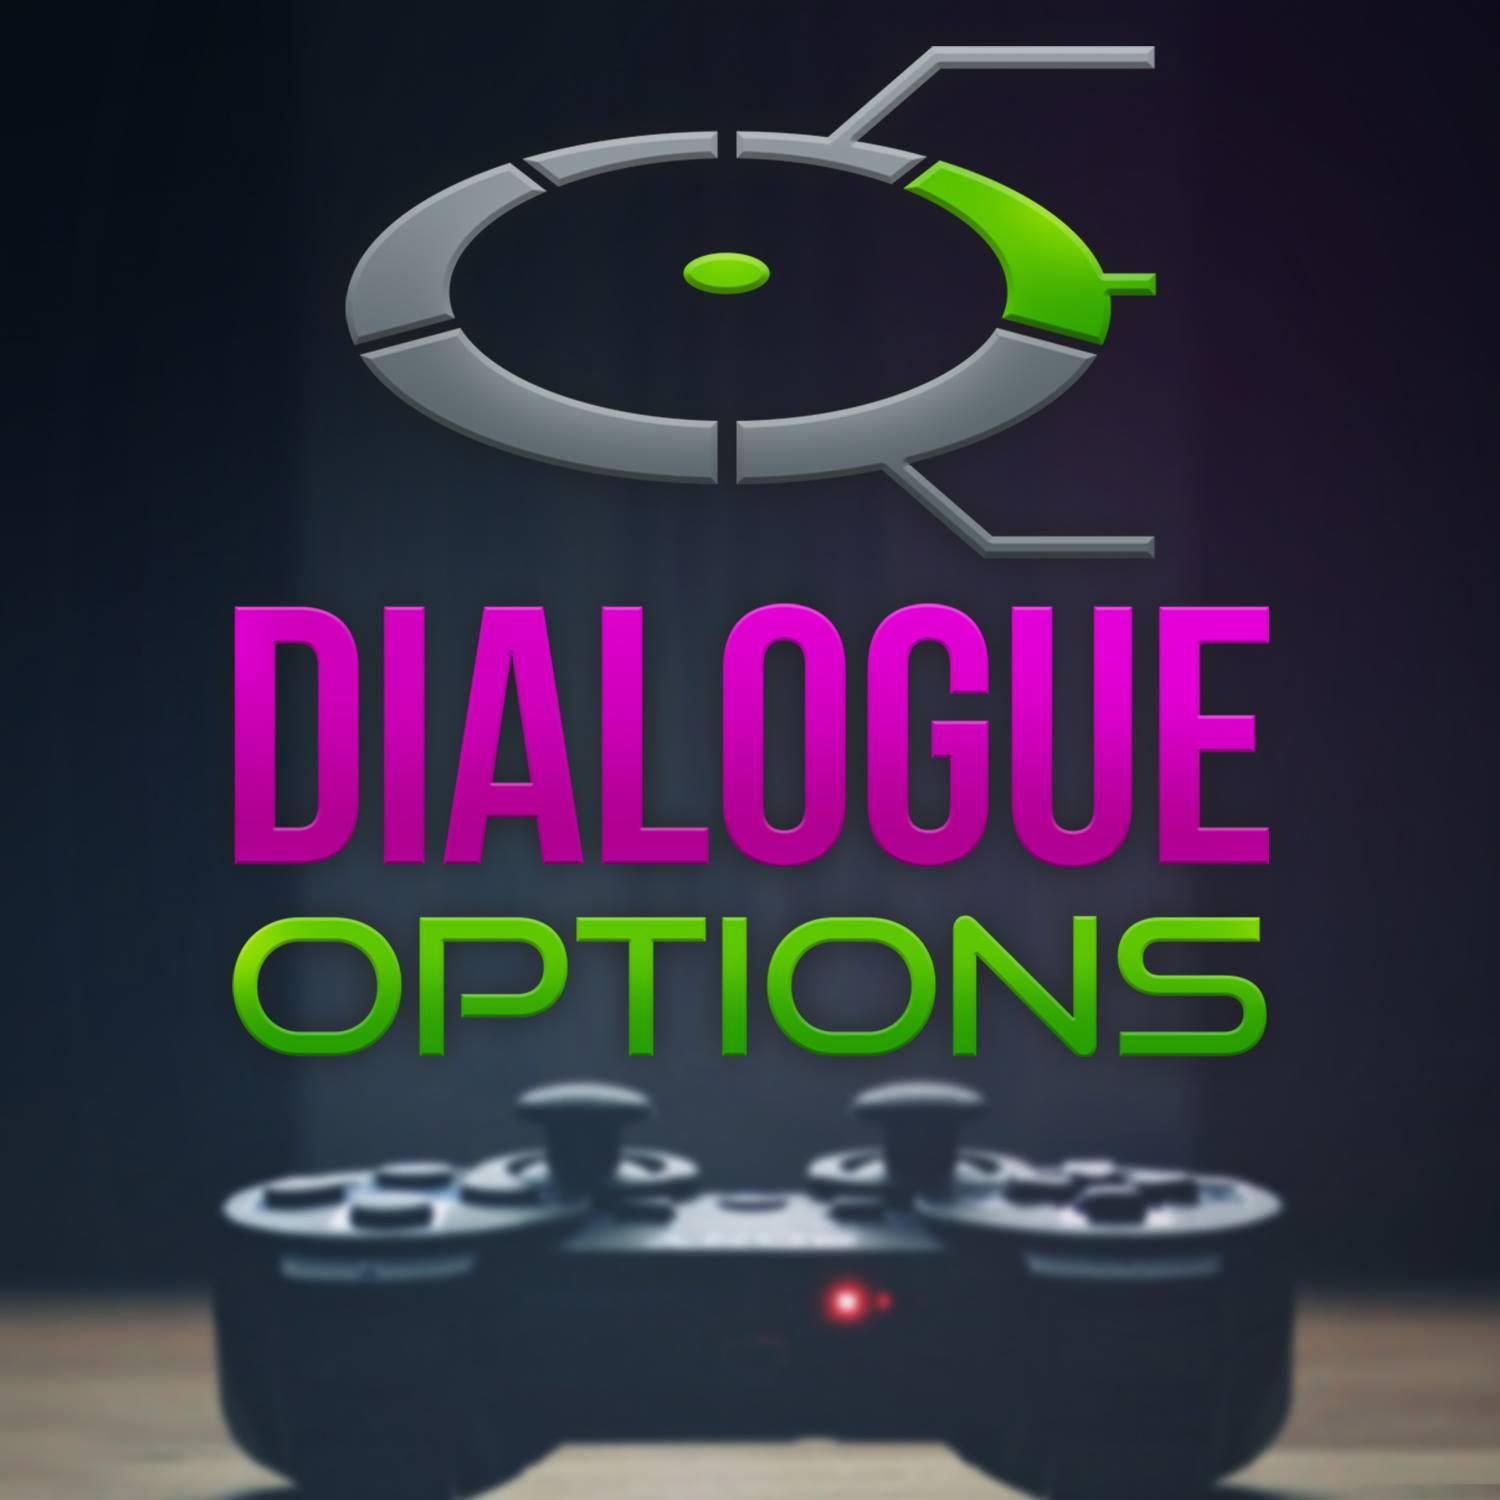 Dialogue Options Podcast Episode 103: Drop Mixing and Dual Wielding